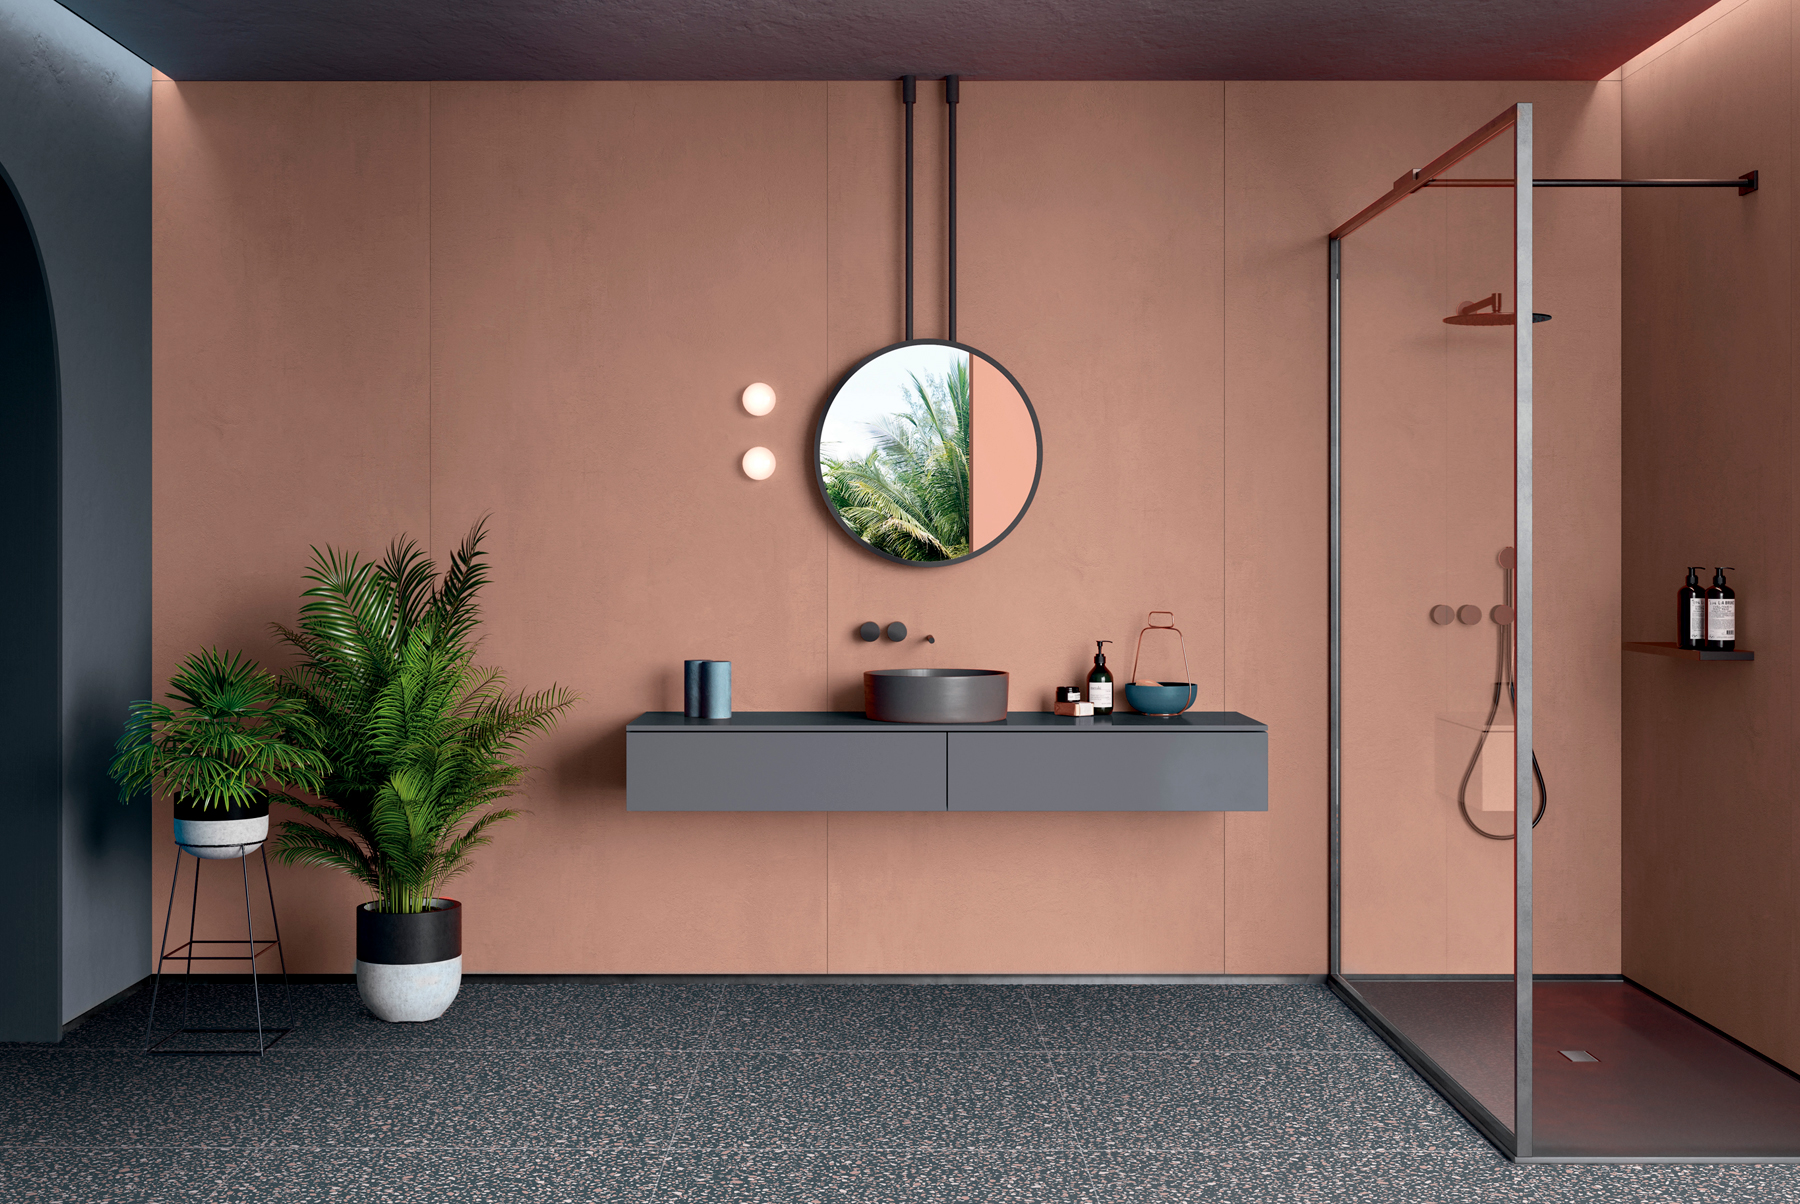 TILES-WIDE-N-STYLE-INSET-4-1800x1204